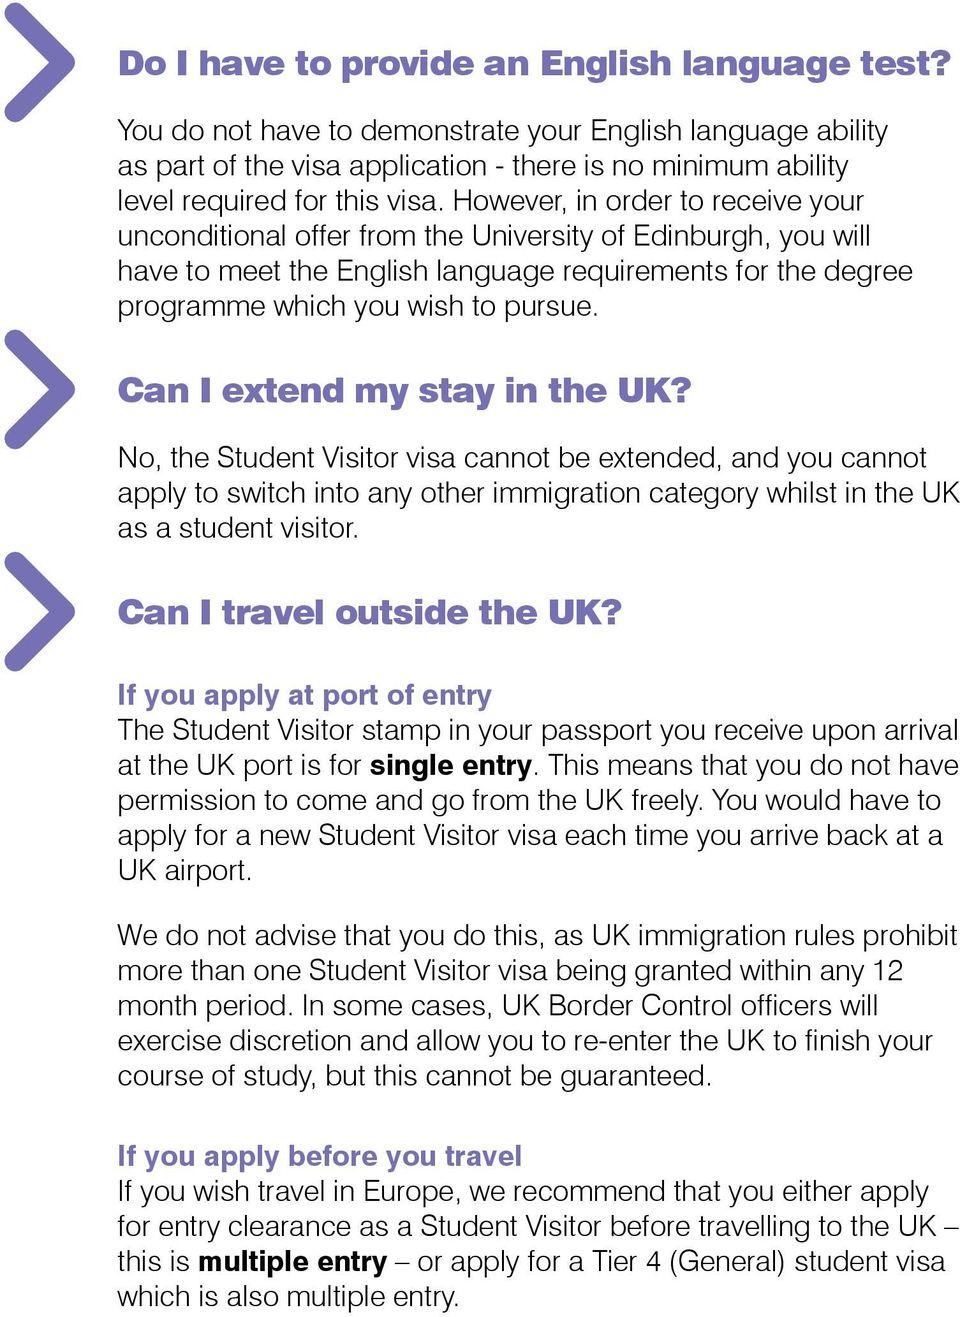 Can I extend my stay in the UK? No, the Student Visitor visa cannot be extended, and you cannot apply to switch into any other immigration category whilst in the UK as a student visitor.